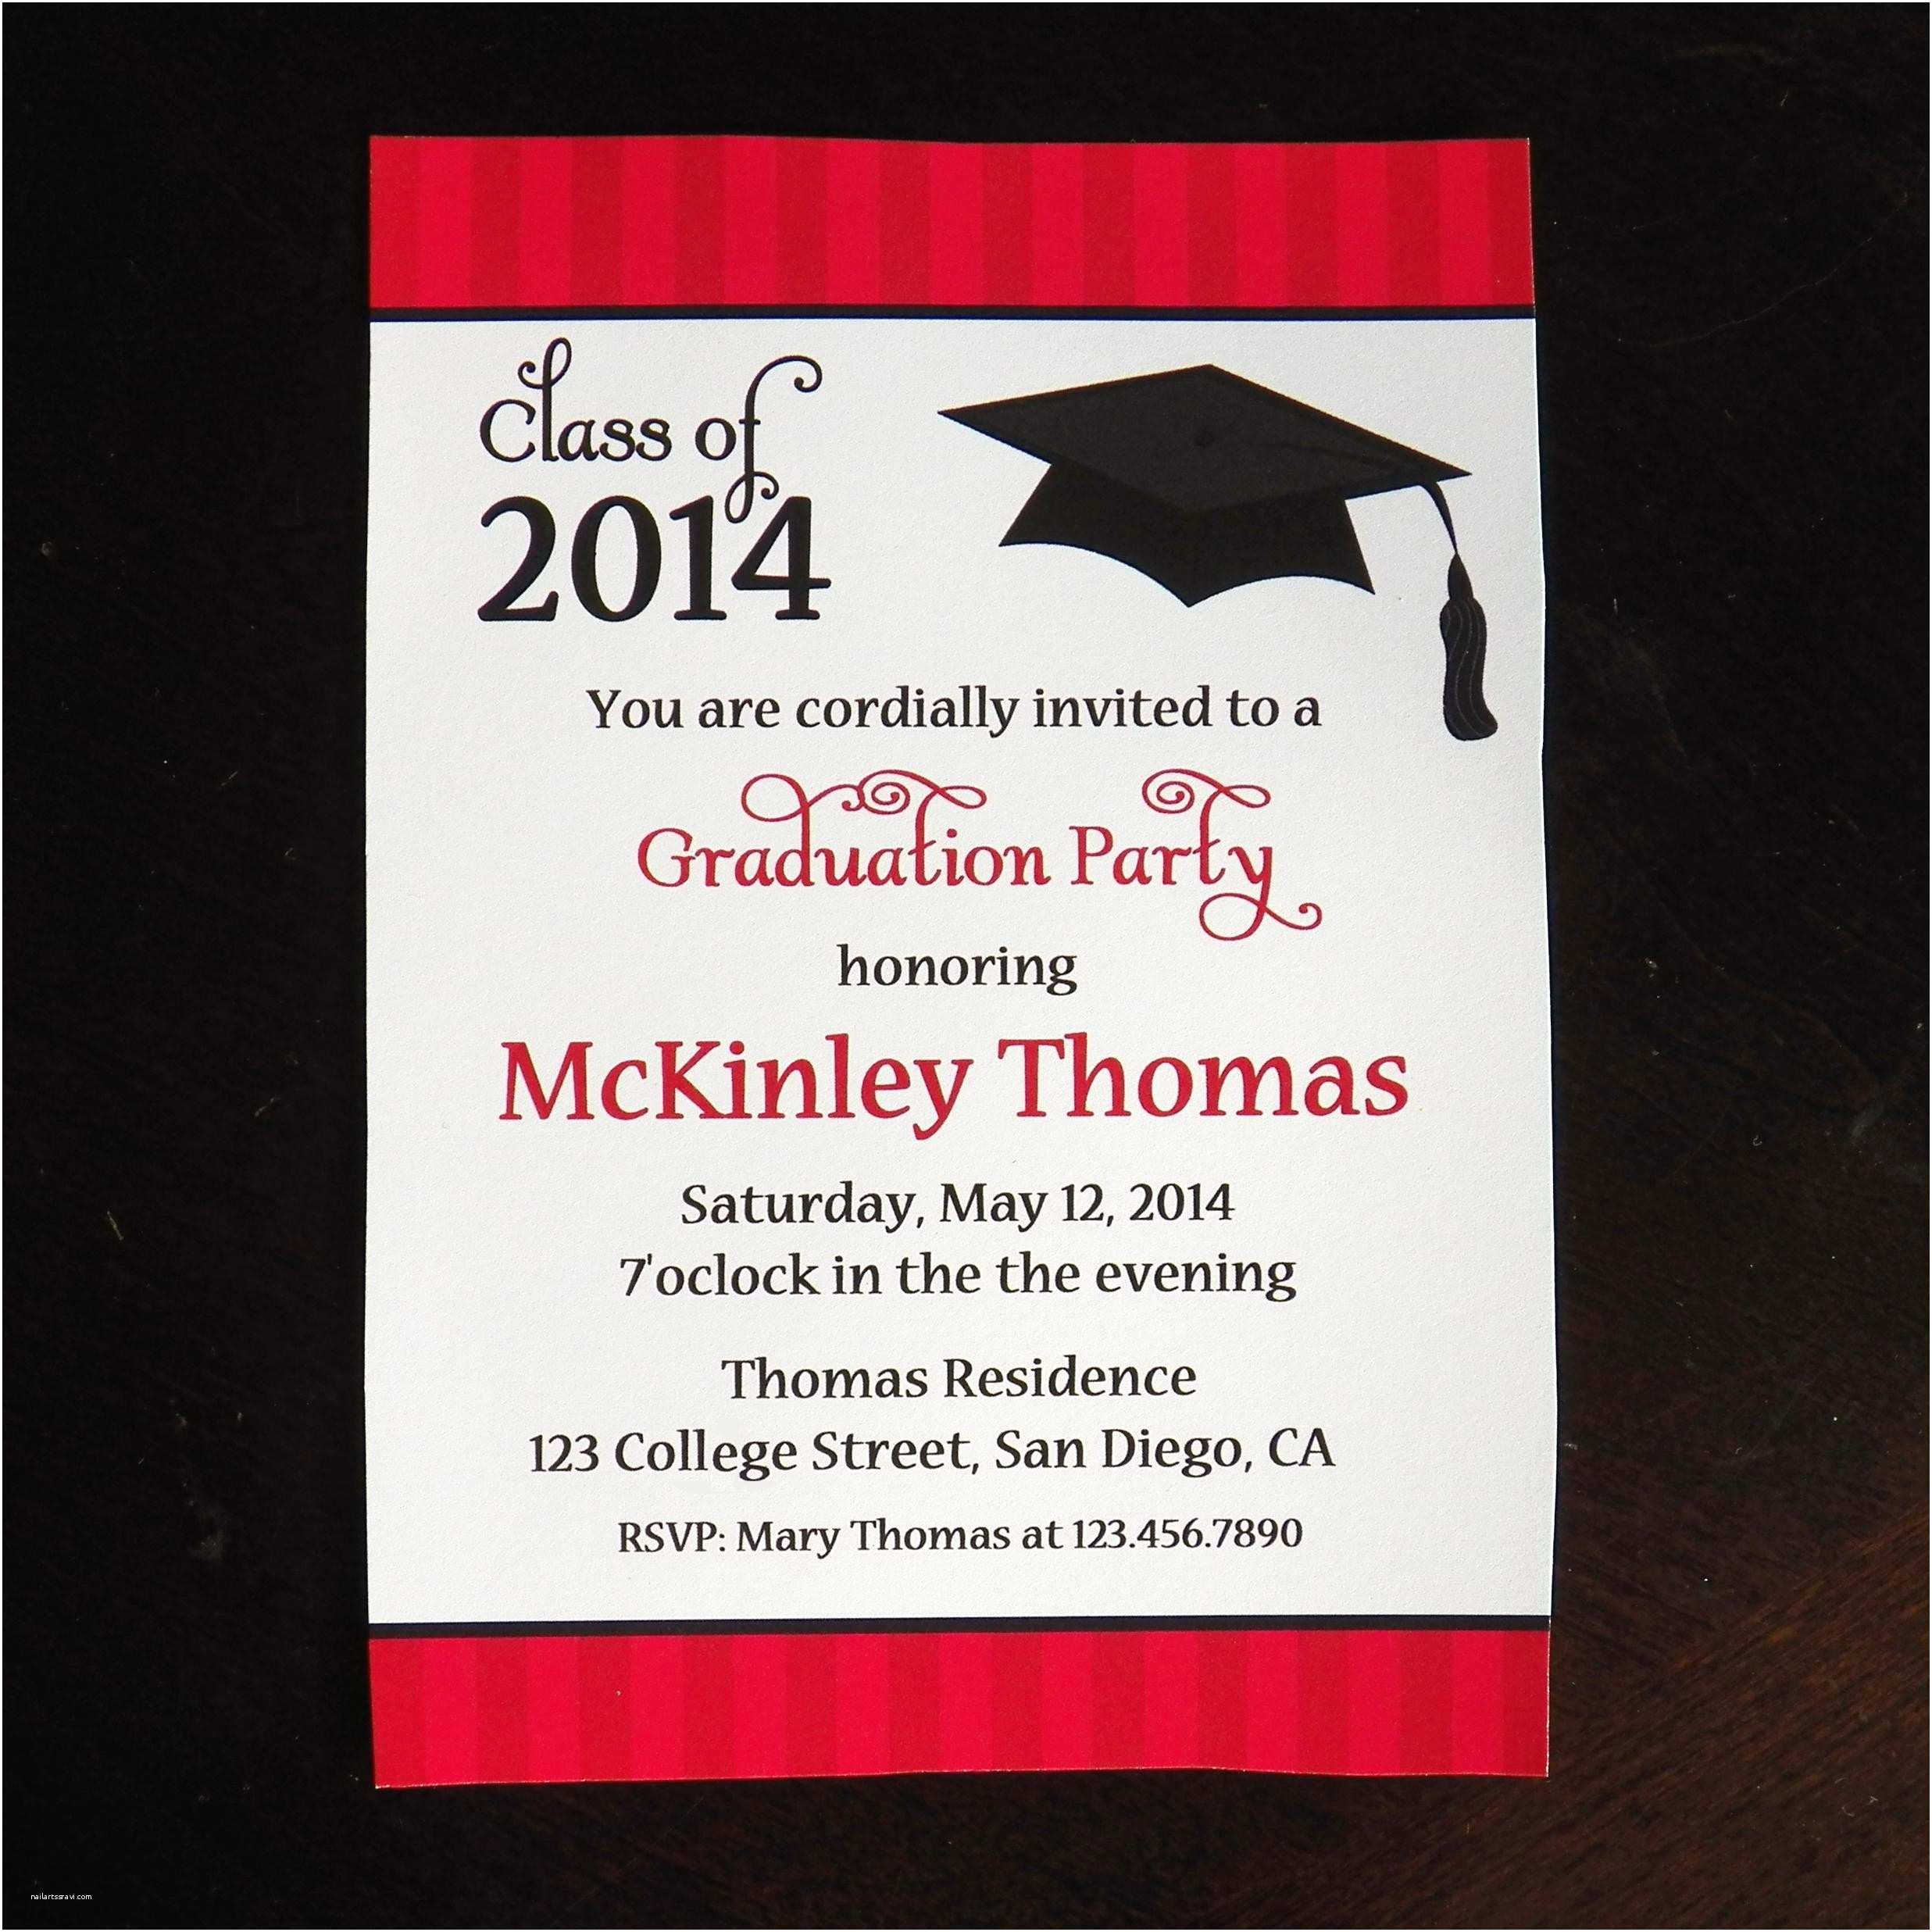 Graduation Party Invitation Ideas Invitation Wording Ideas for Graduation Party Save